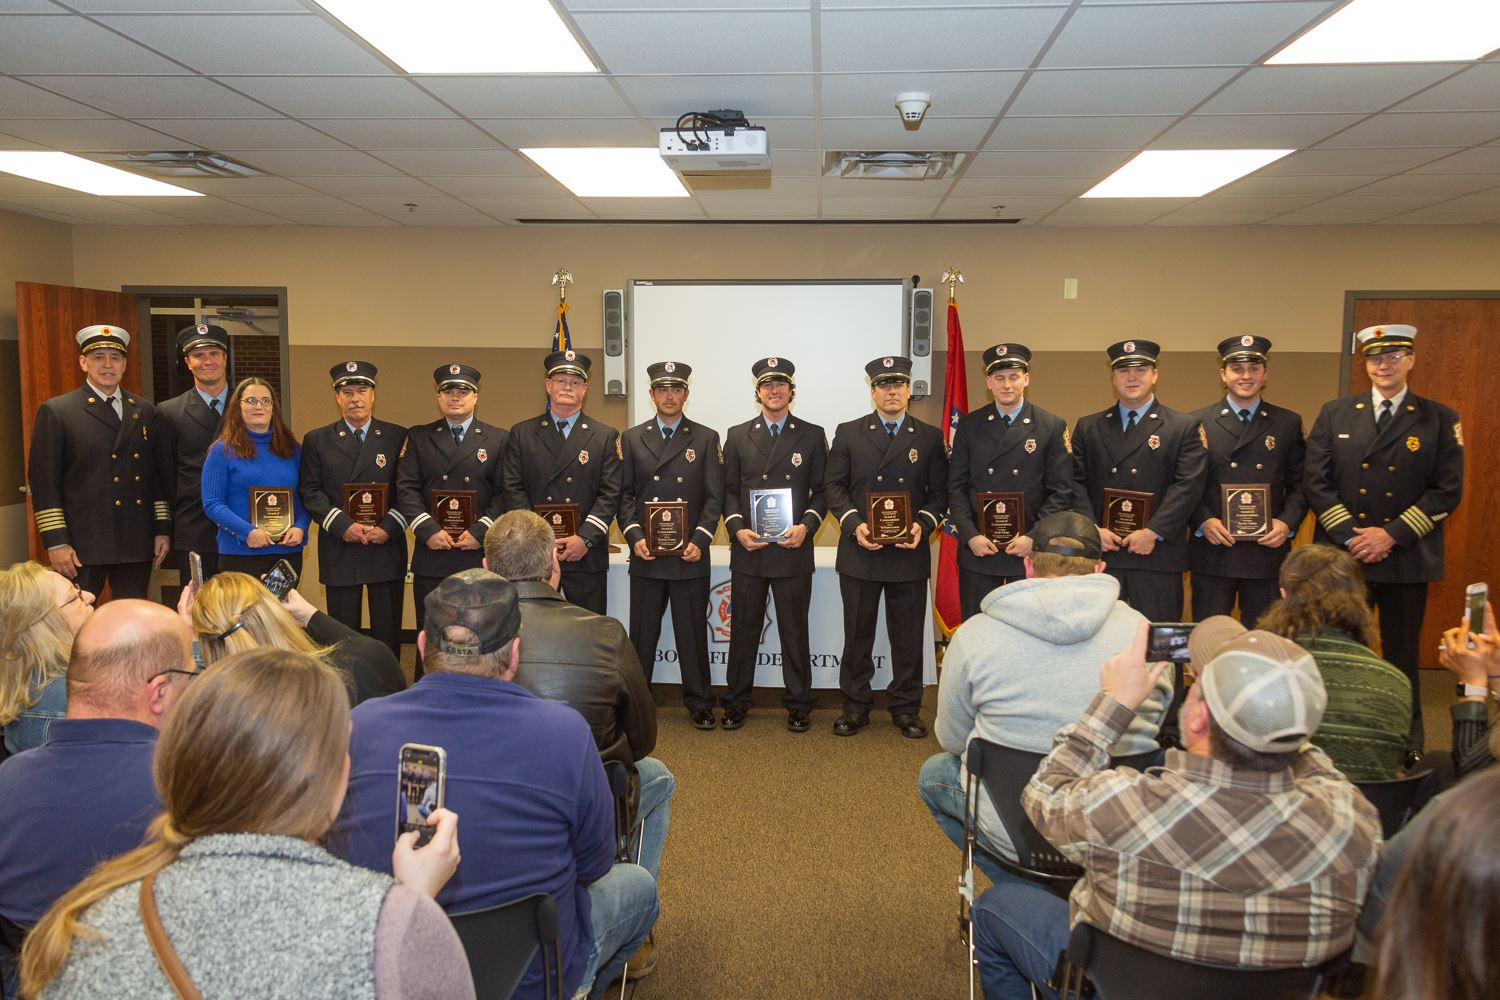 Fire Department Award recipients standing in line in front of audience at awards ceremony holding th